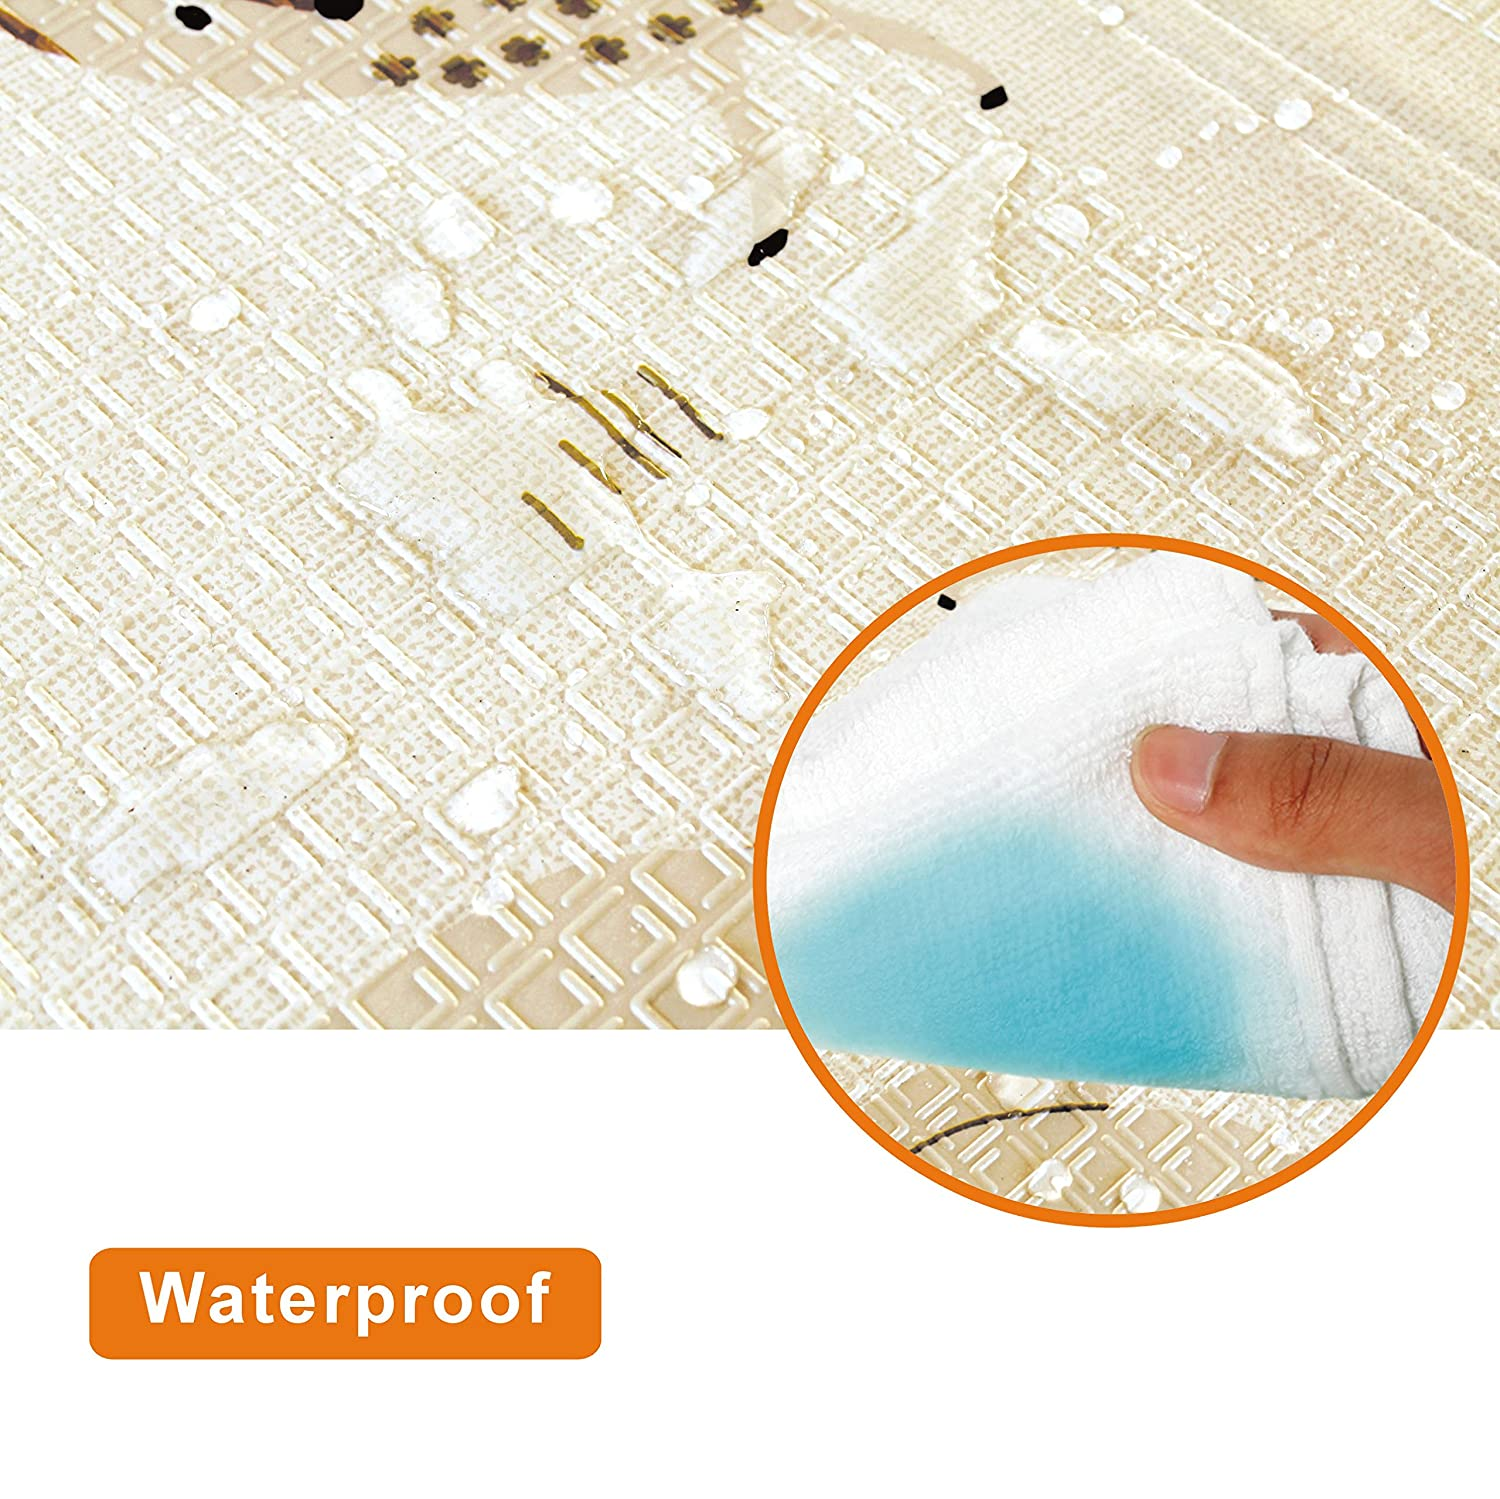 150x180x1in Baby Play Mat Folding Baby Care XPE Playmat Baby Mat for Floor Crawl Mat for Baby Floor Slip Foam Reversible Waterproof Portable Kids Toddler Outdoor or Indoor Non Toxic Colorful